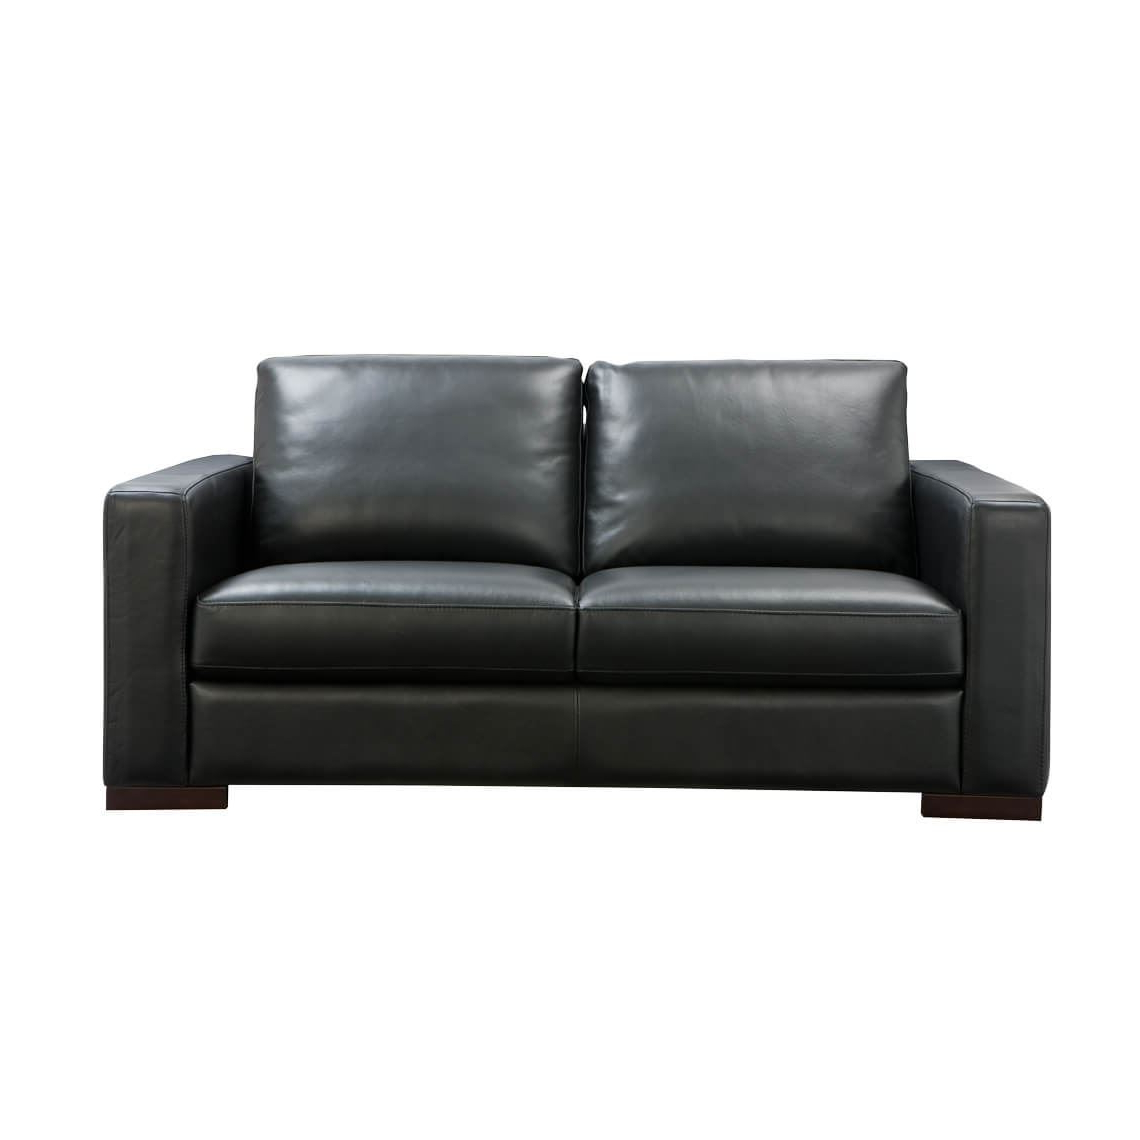 Best And Newest Freedom Furniture And Homewares Regarding Tate Arm Sofa Chairs (View 20 of 20)